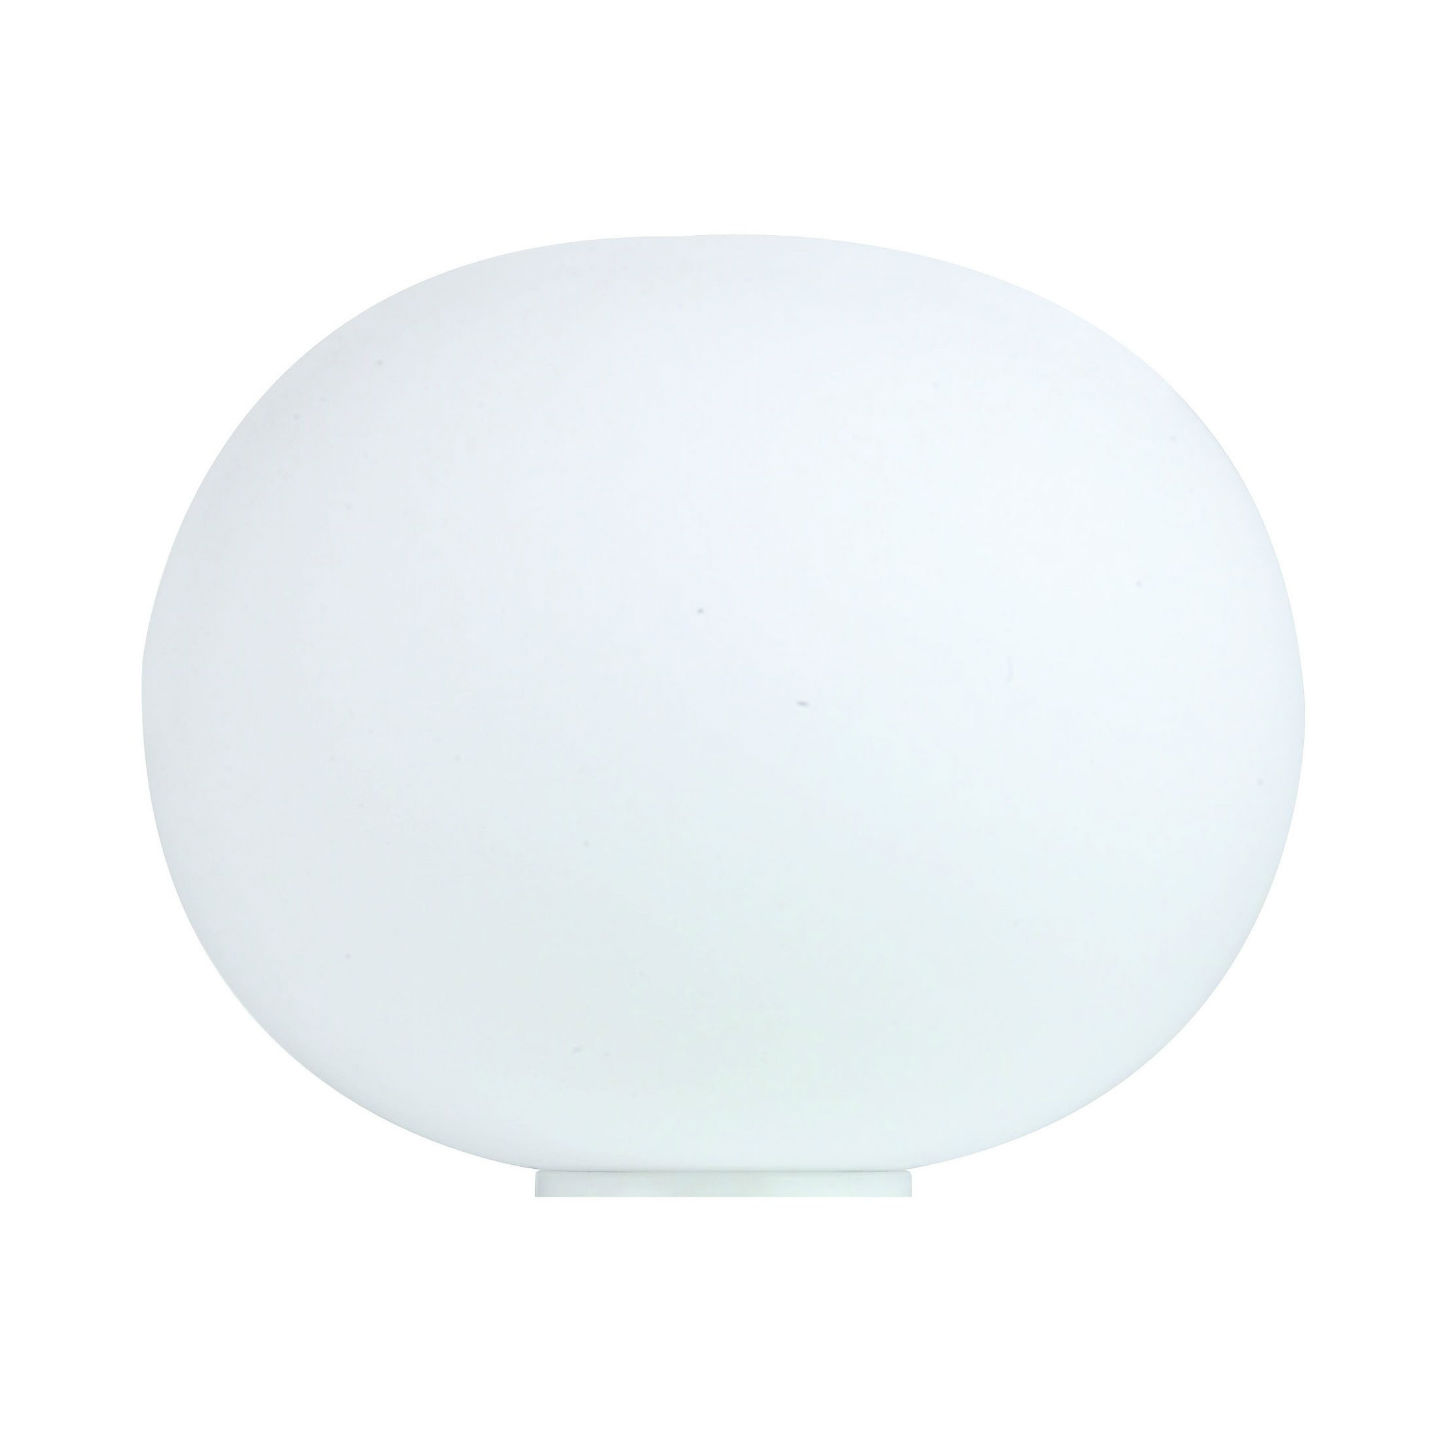 Glo Ball Basic 1 Table Lamp 33cm E27 205W HSGS with intensity regulator - white opal